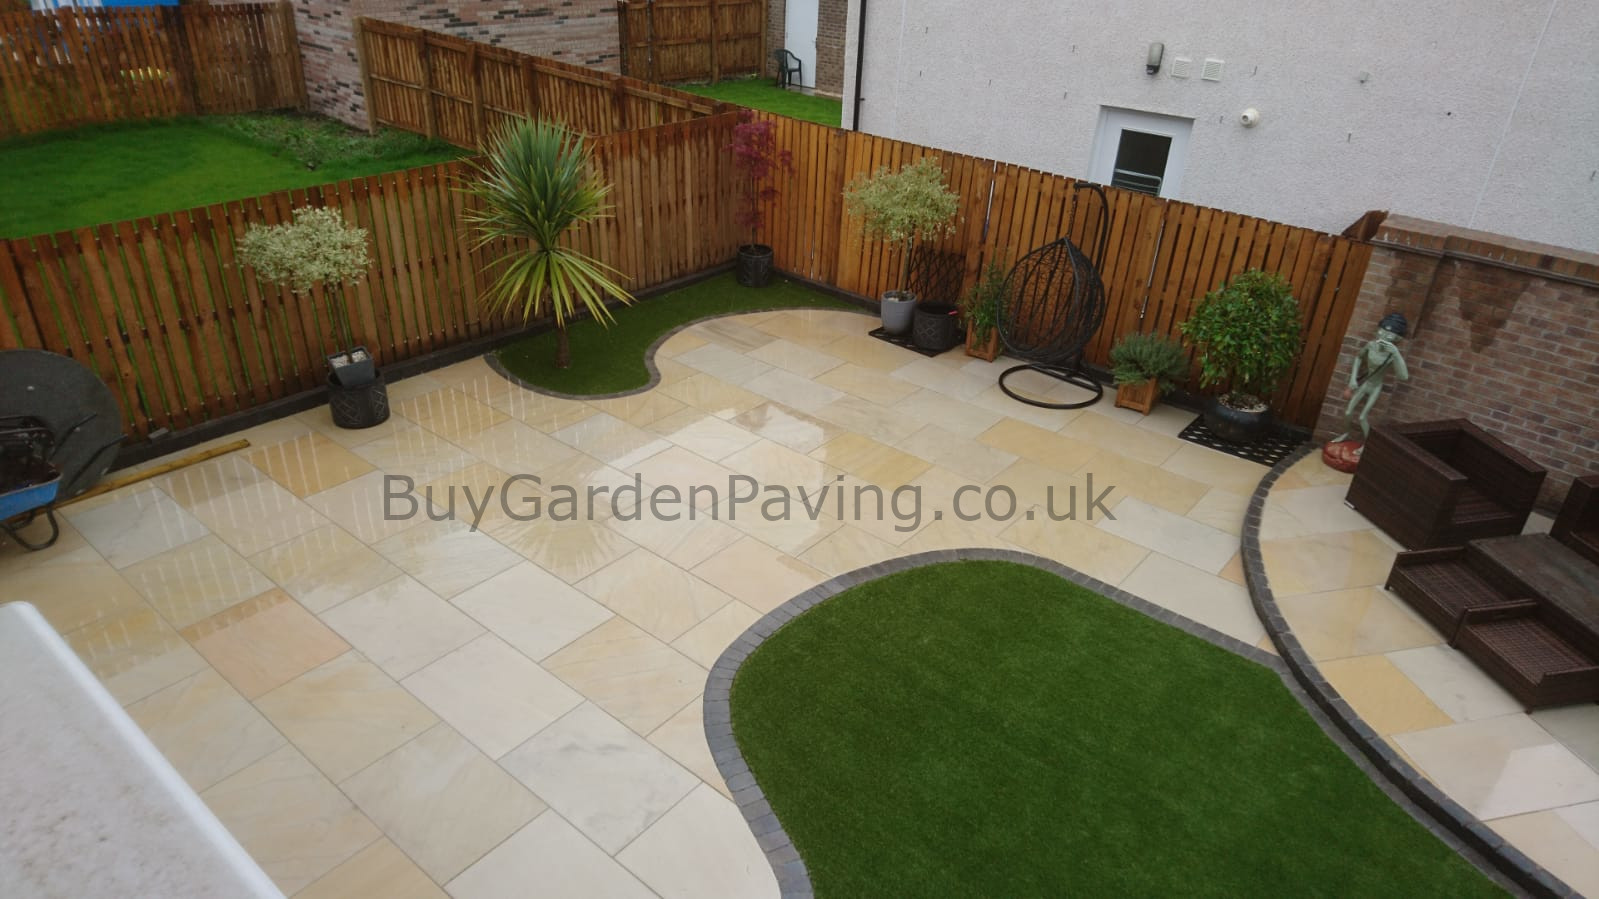 Smooth Honed Mint Ivory Indian Sandstone Paving 1m2 900x600 *READ DESCRIPTION*